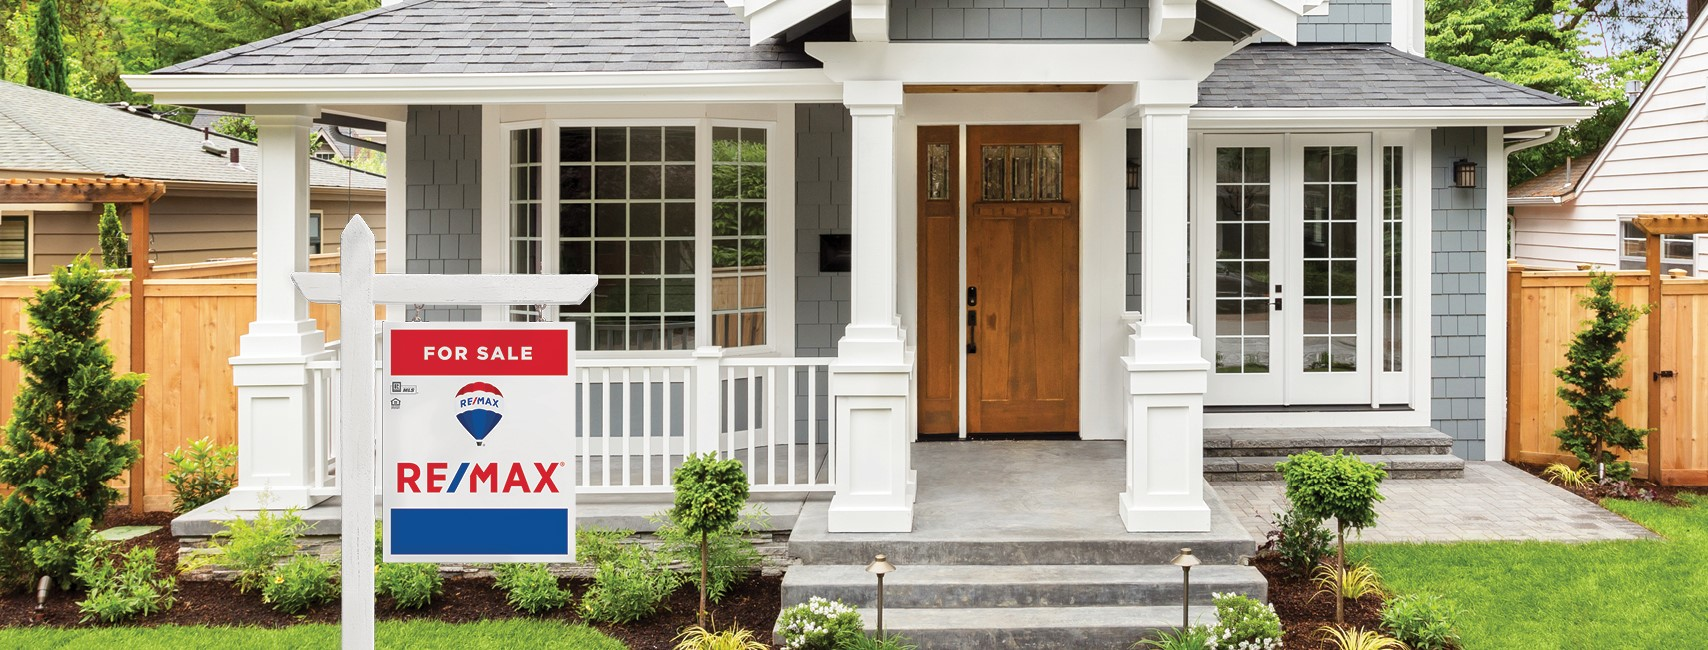 Julia Phares REMAX home page